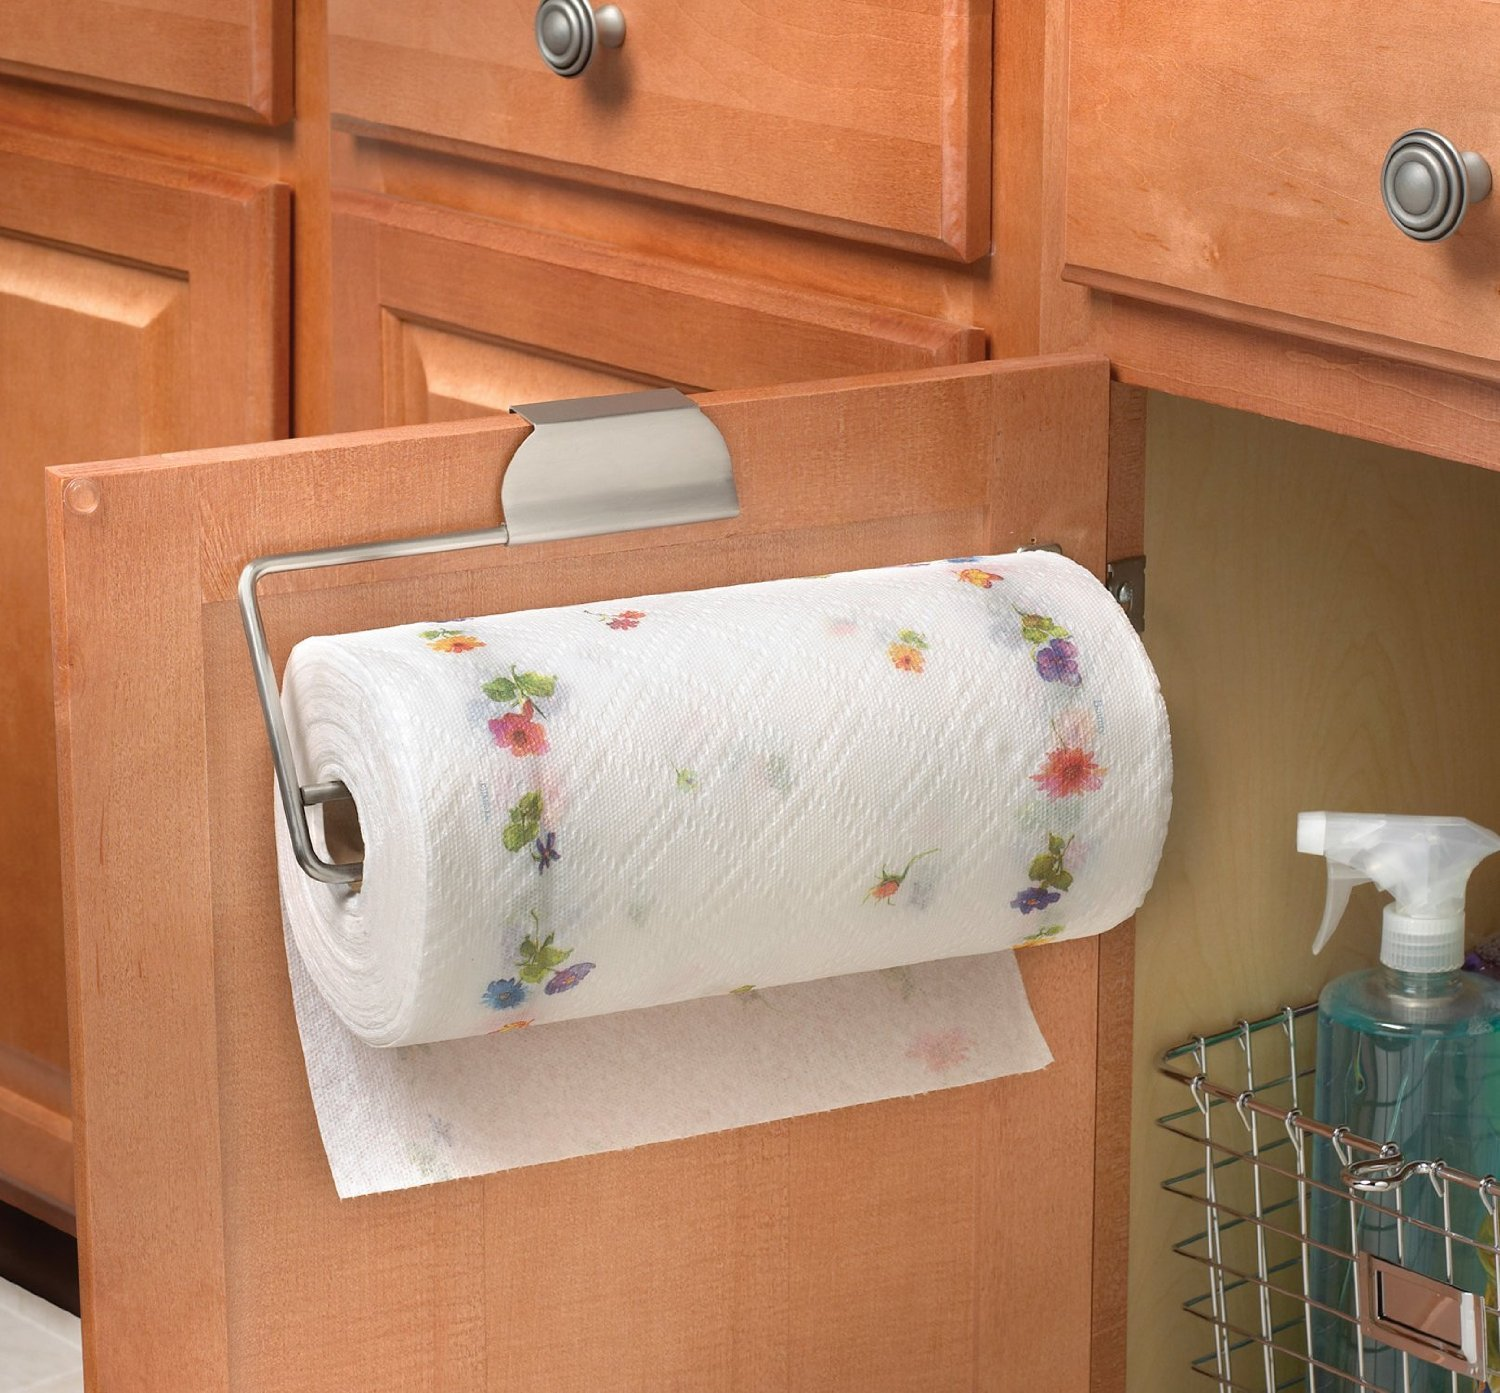 sus towel index holder rustproof tissue storage bathroom kes paper steel toilet stainless pivot dispenser